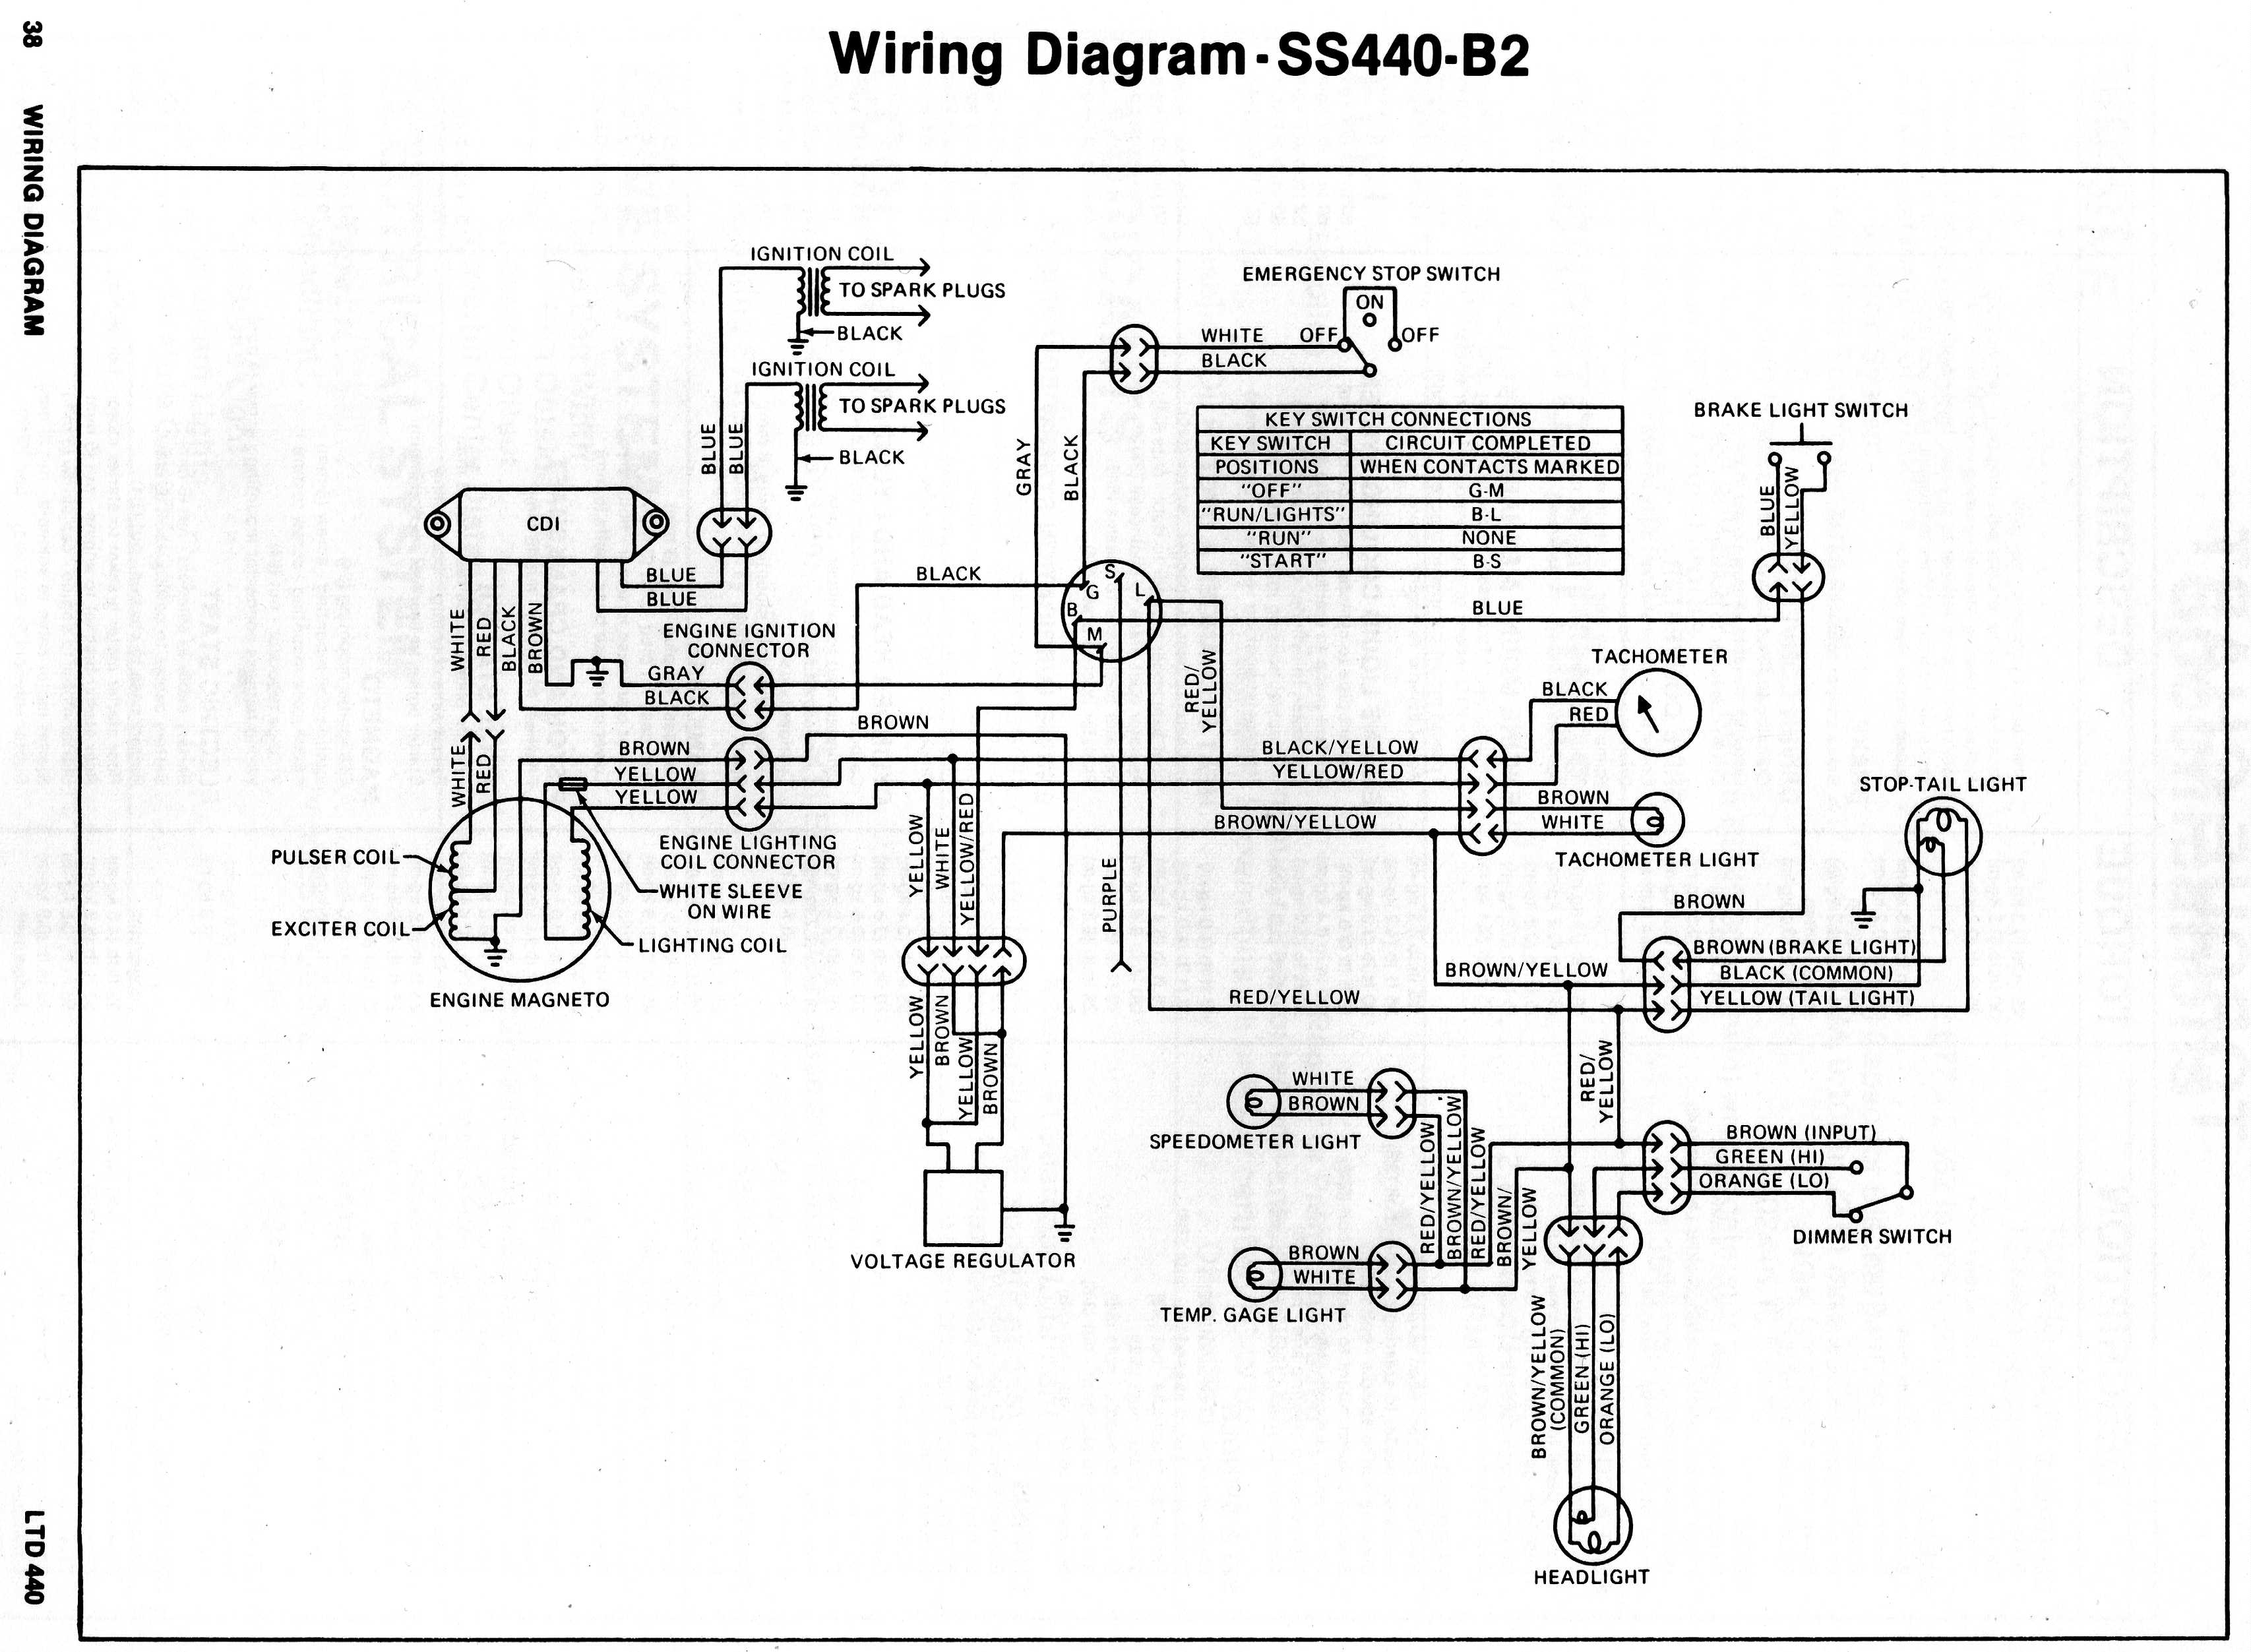 Kawasaki Prairie 300 Ignition Wiring Diagram moreover John Deere G Wiring Diagram together with 3tpls Check Float Level Motorcycle Carb as well 818587 Fuse Panel Diagram furthermore Watch. on kawasaki bayou 220 parts diagram